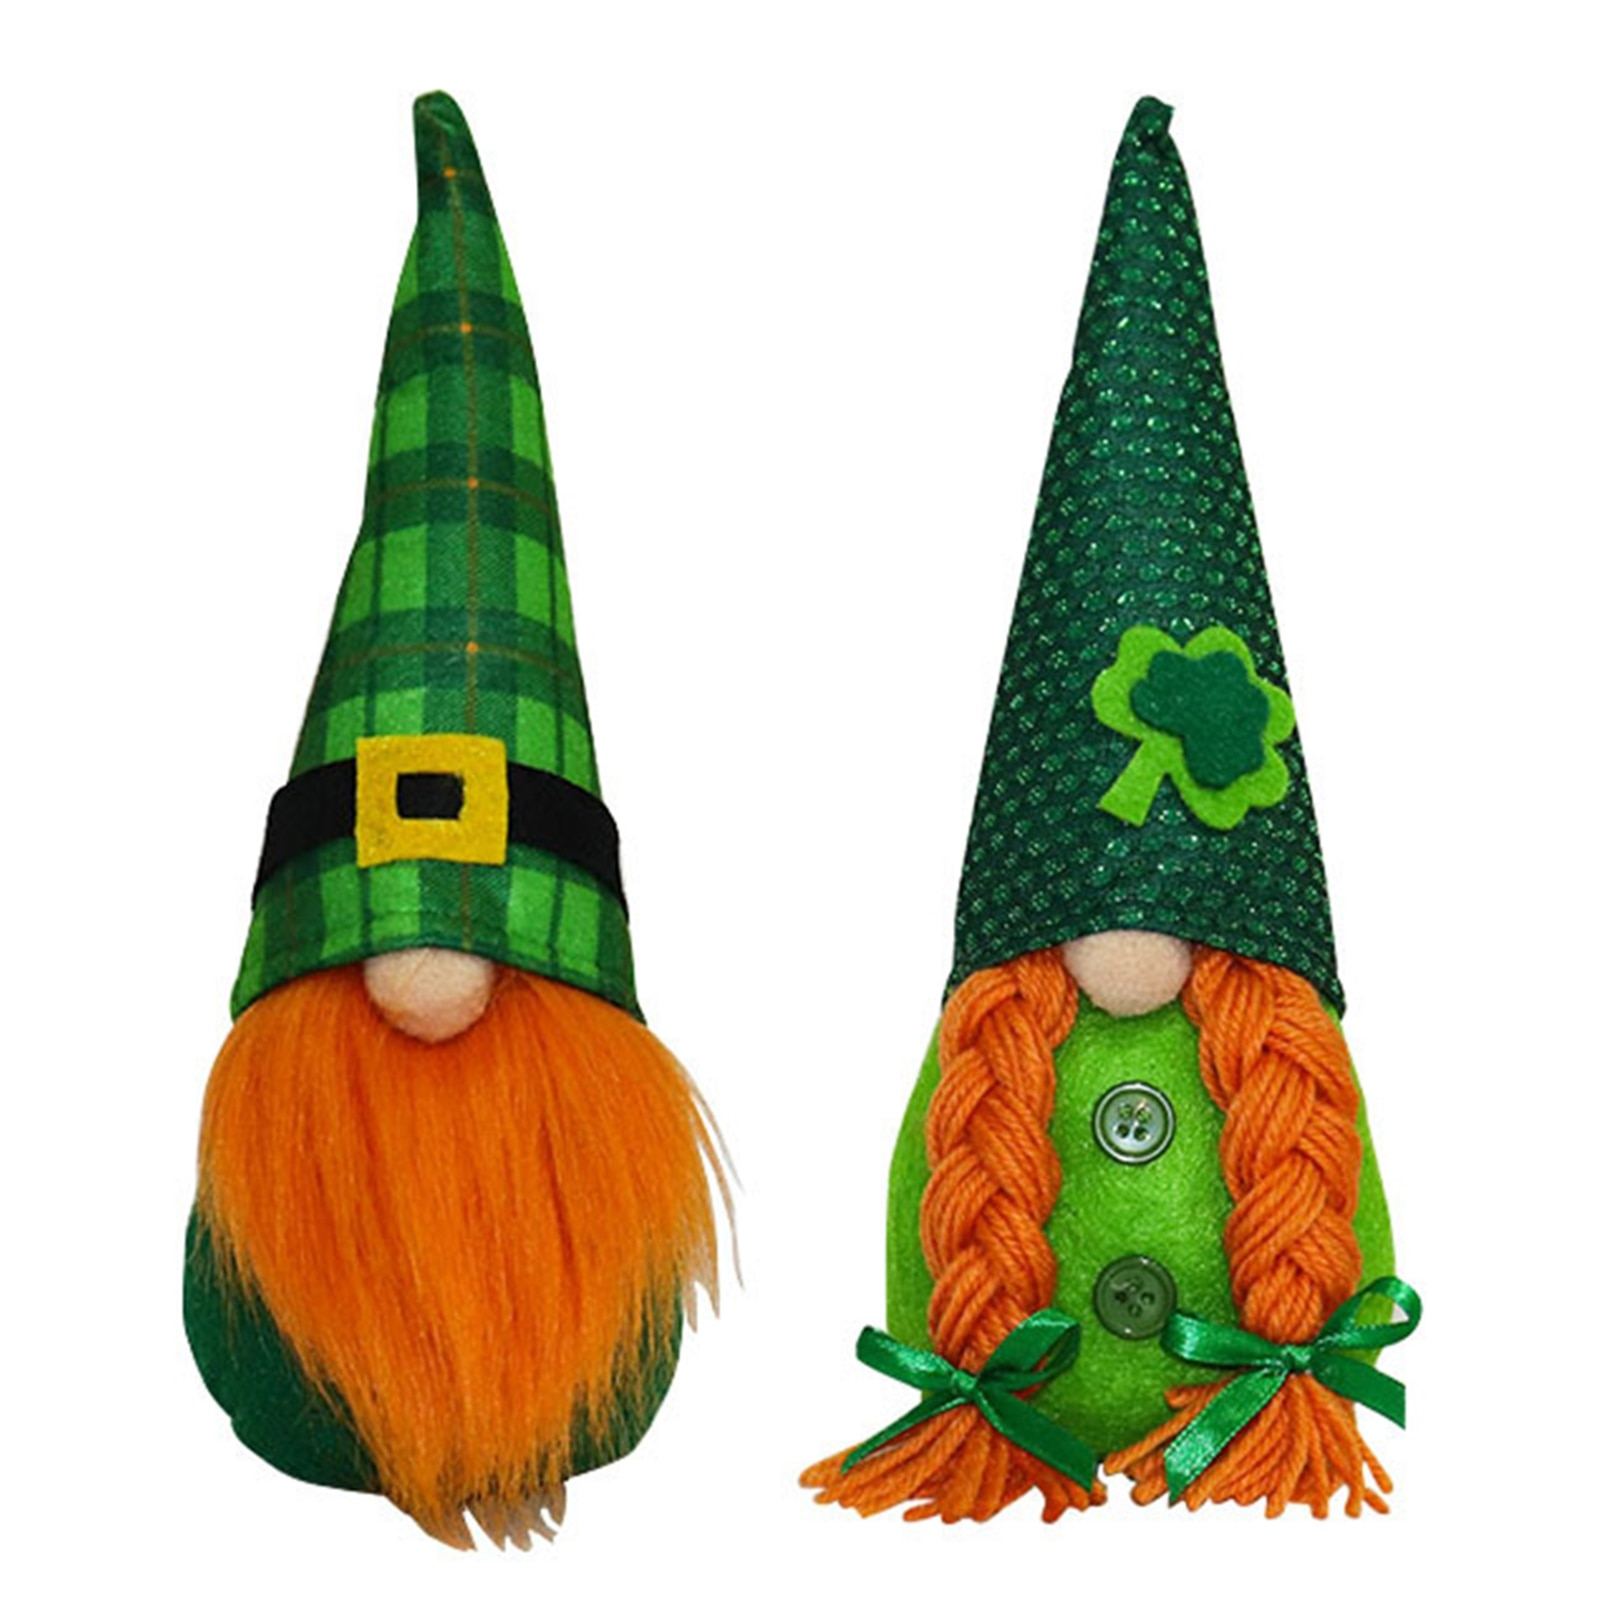 2021 Happy St Patricks Day High Quality Handmade Gnome Plush Toy Brings Good Luck Lovely Plushie Perfect Gift For Family